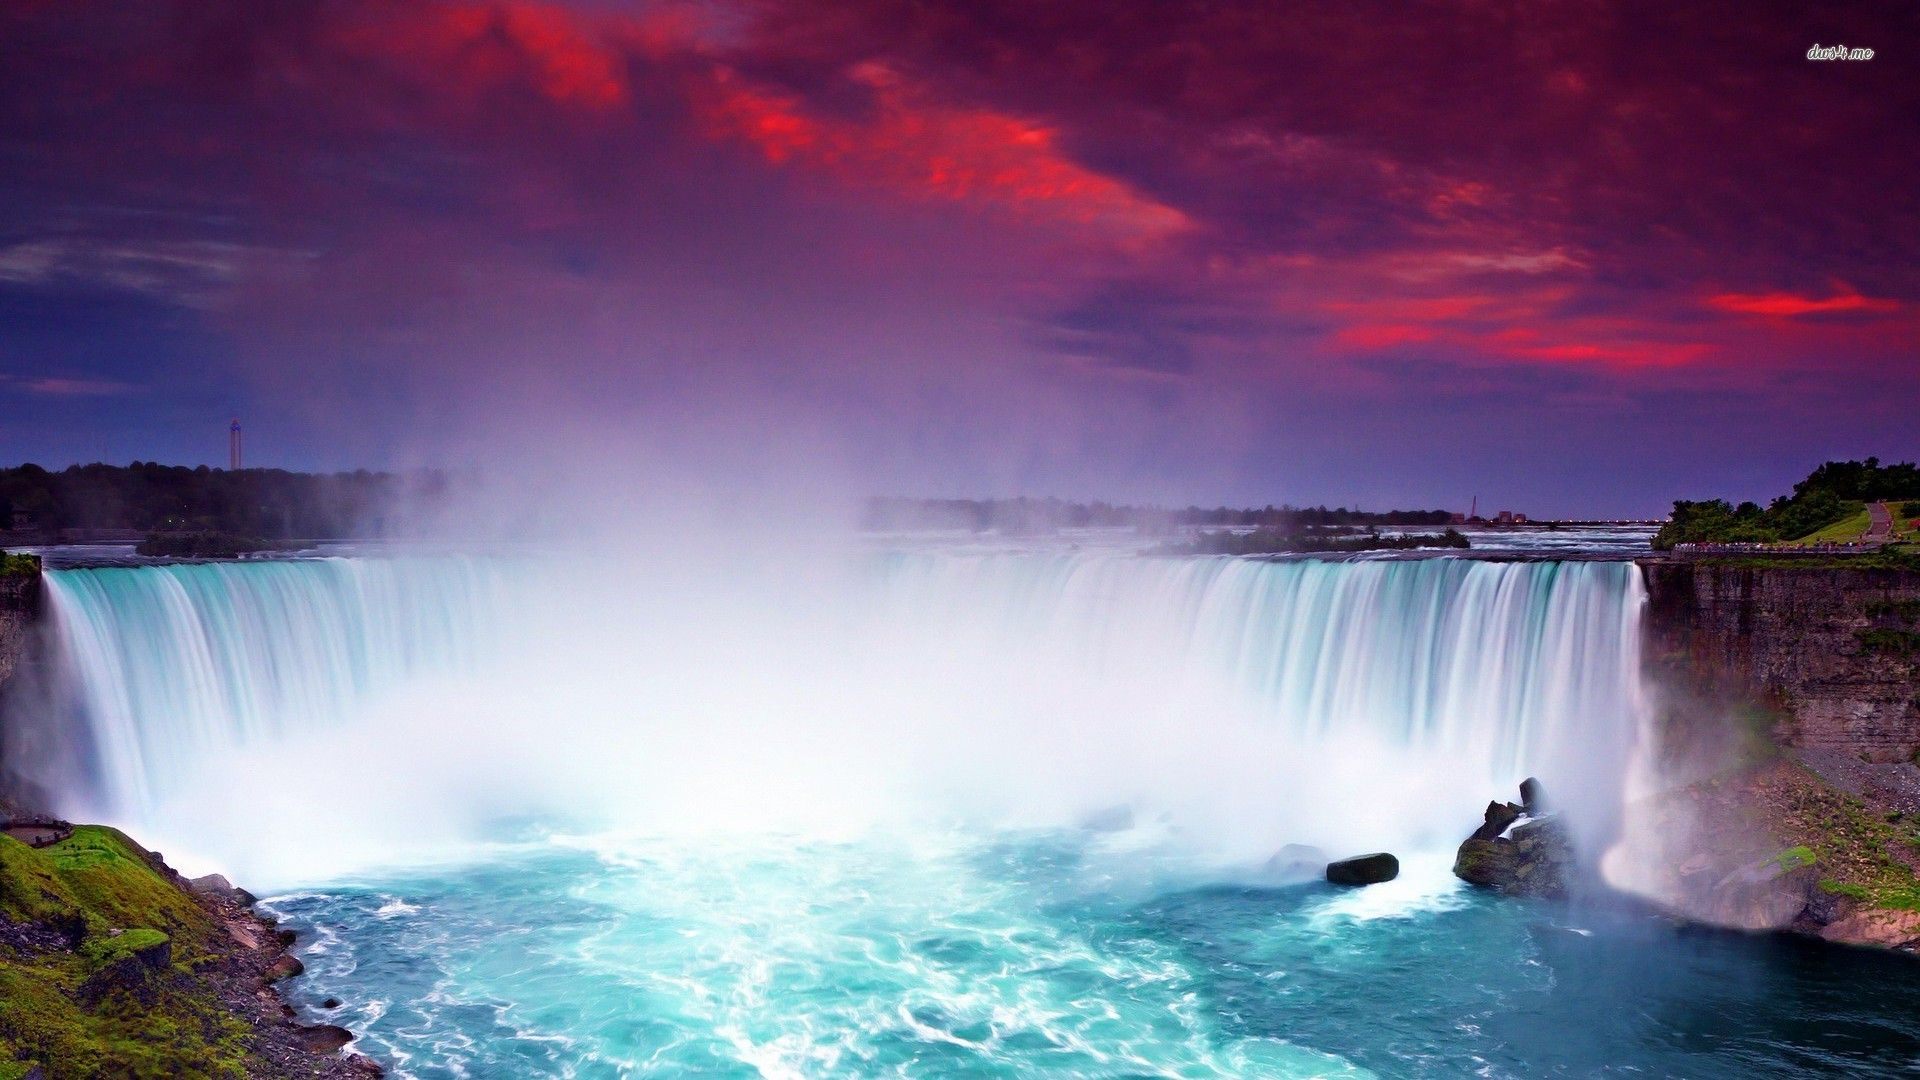 niagara falls wallpaper hd hd wallpapers high definition